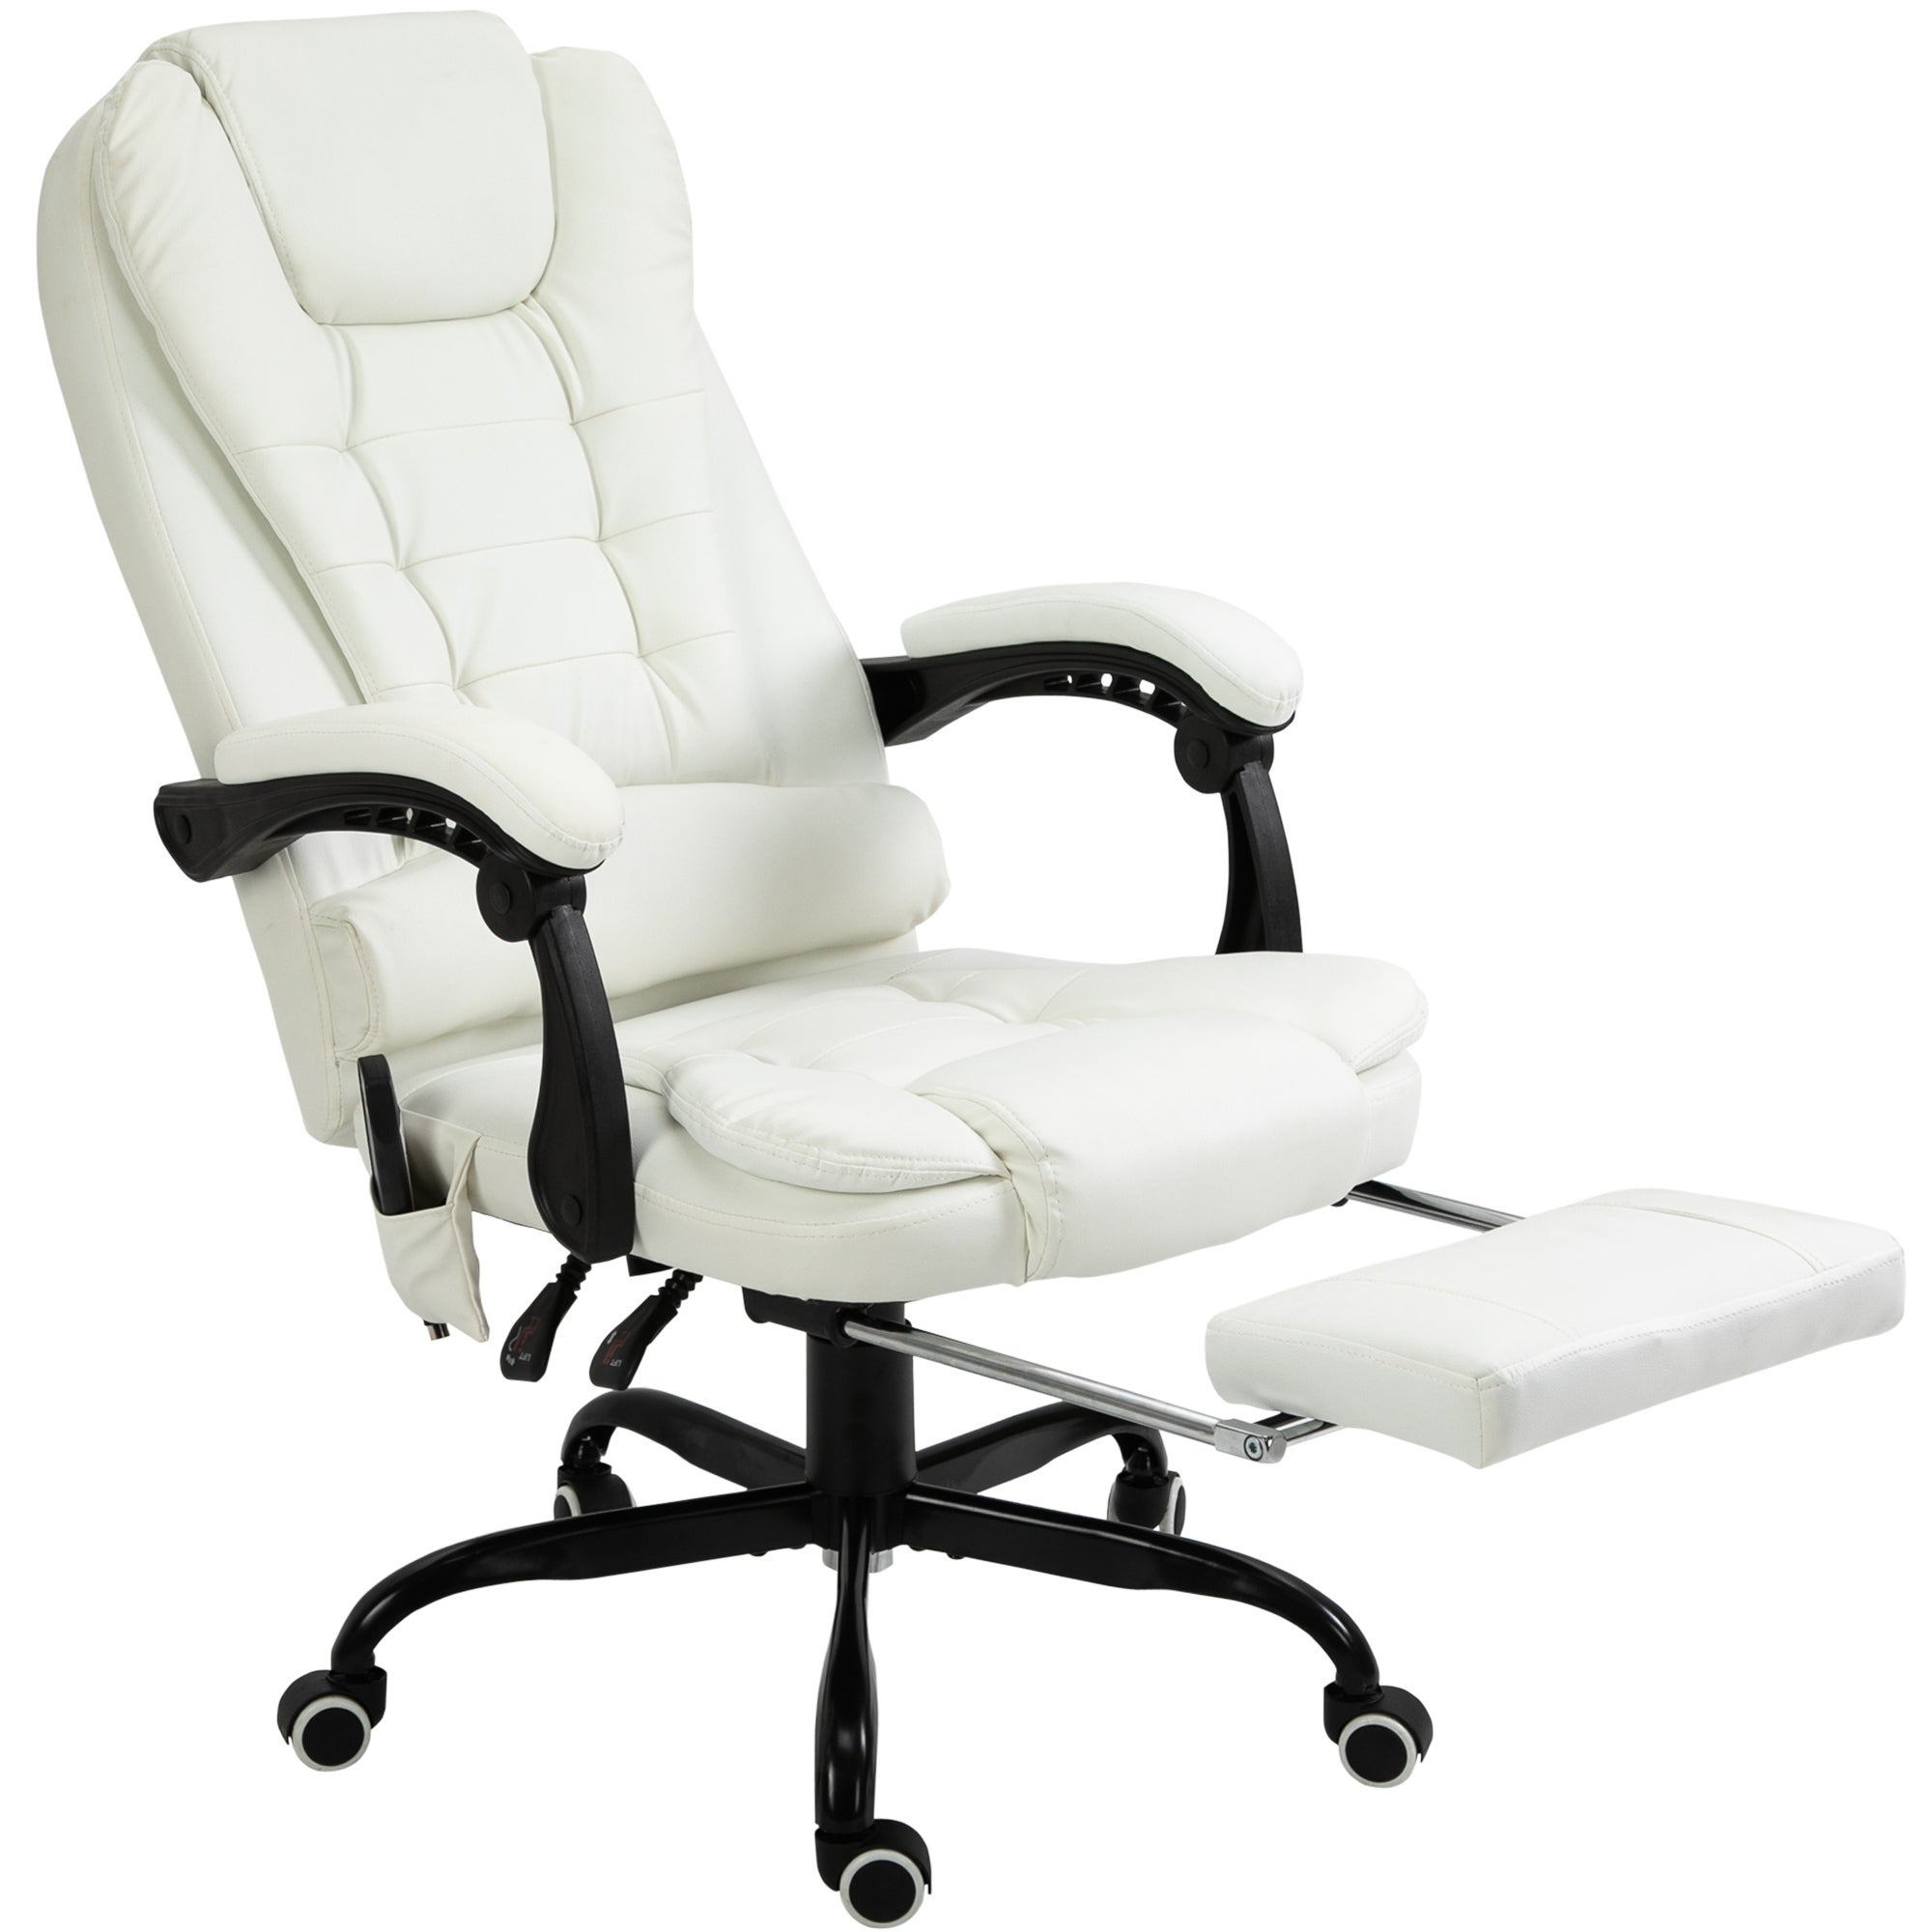 2 Points  Leather Massage Office Chair Footrest  Computer Gaming Swivel Recliner